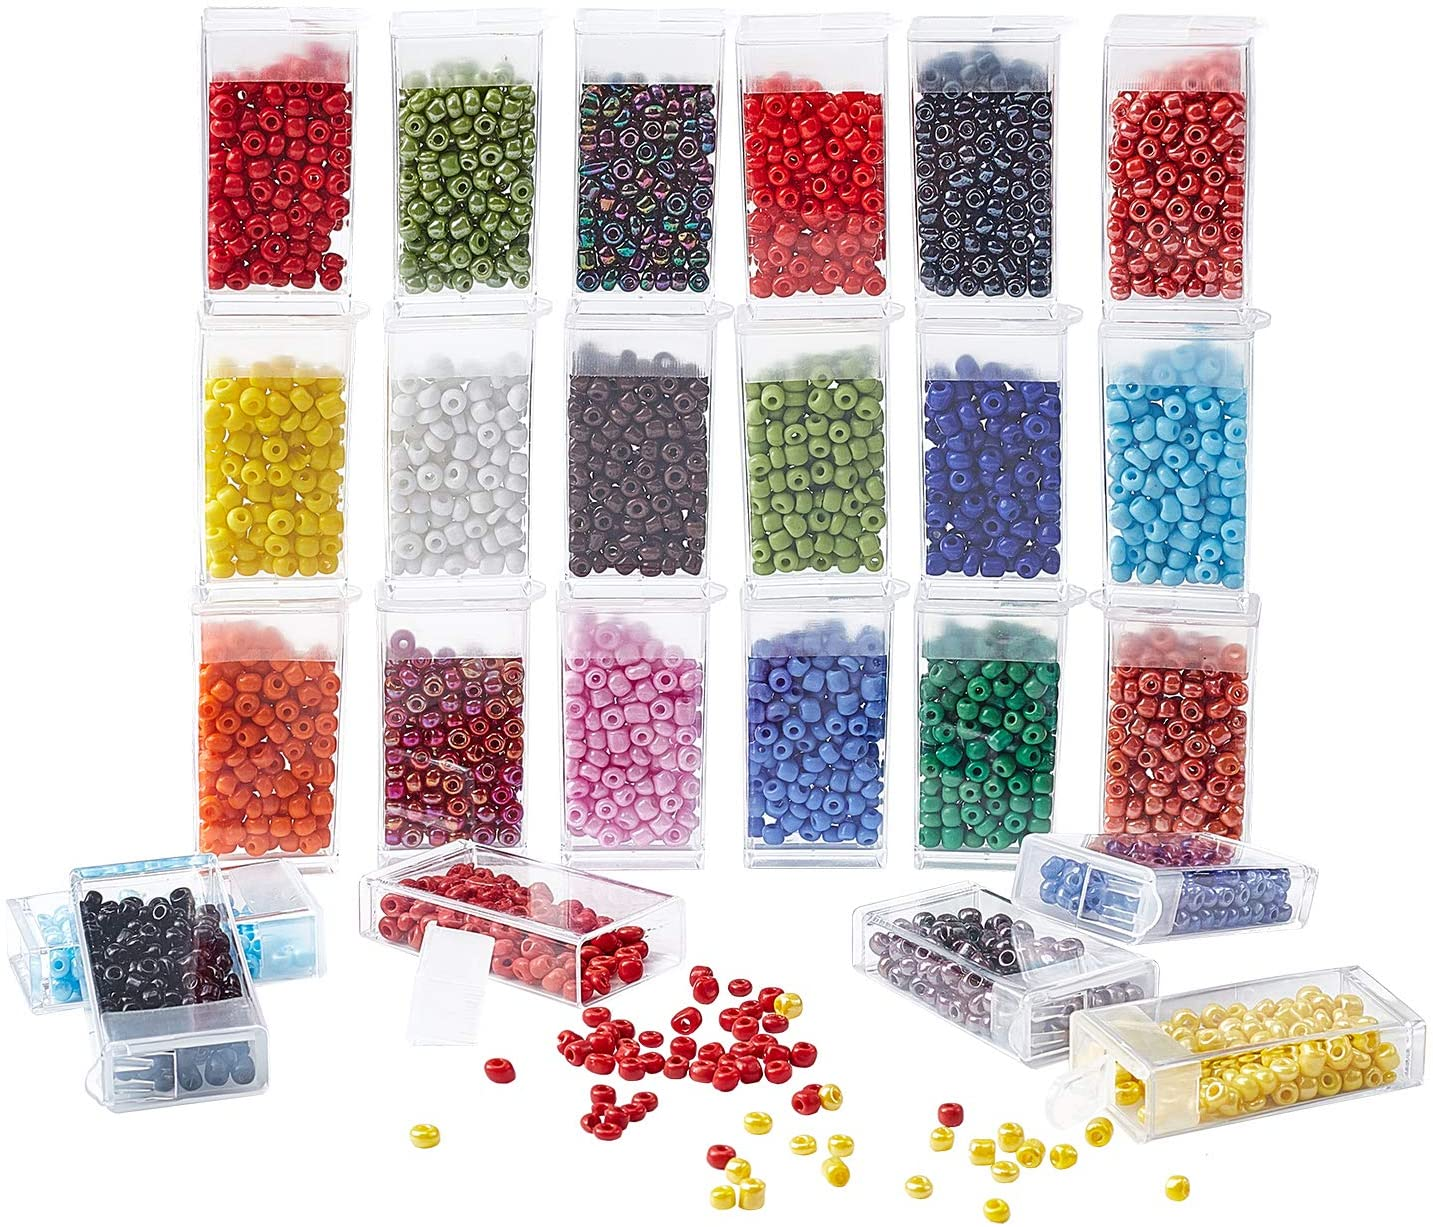 PH PandaHall Seed Beads for Jewelry Making, 24 Color 6/0 4mm Opaque Waist Seed Beads for DIY Belly Hawaii Bikini Jewelry Bracelet, Necklaces, Body Chain